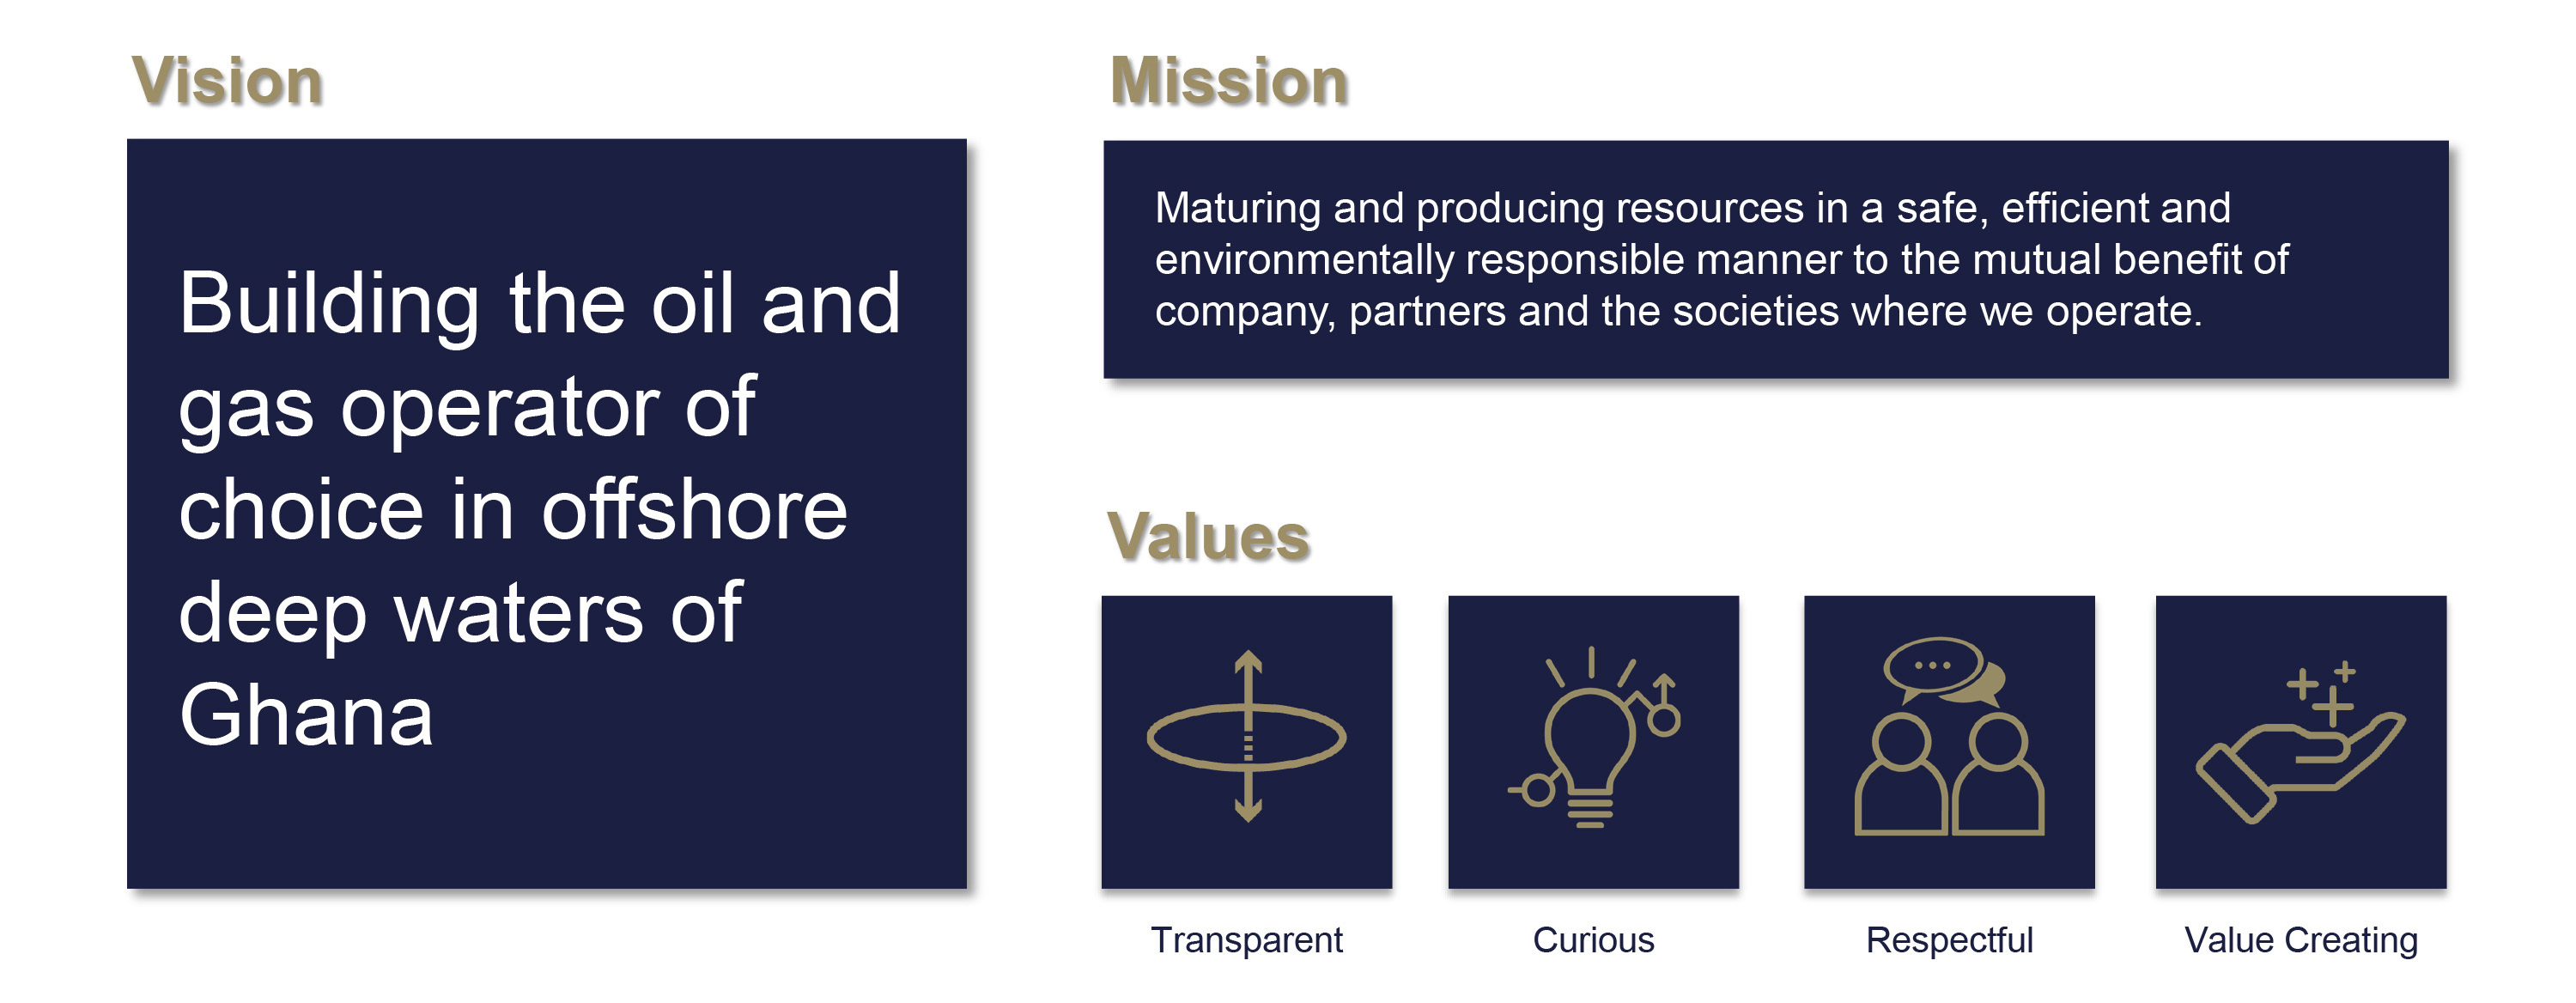 20200226 Aker Energy vision mission and values 1